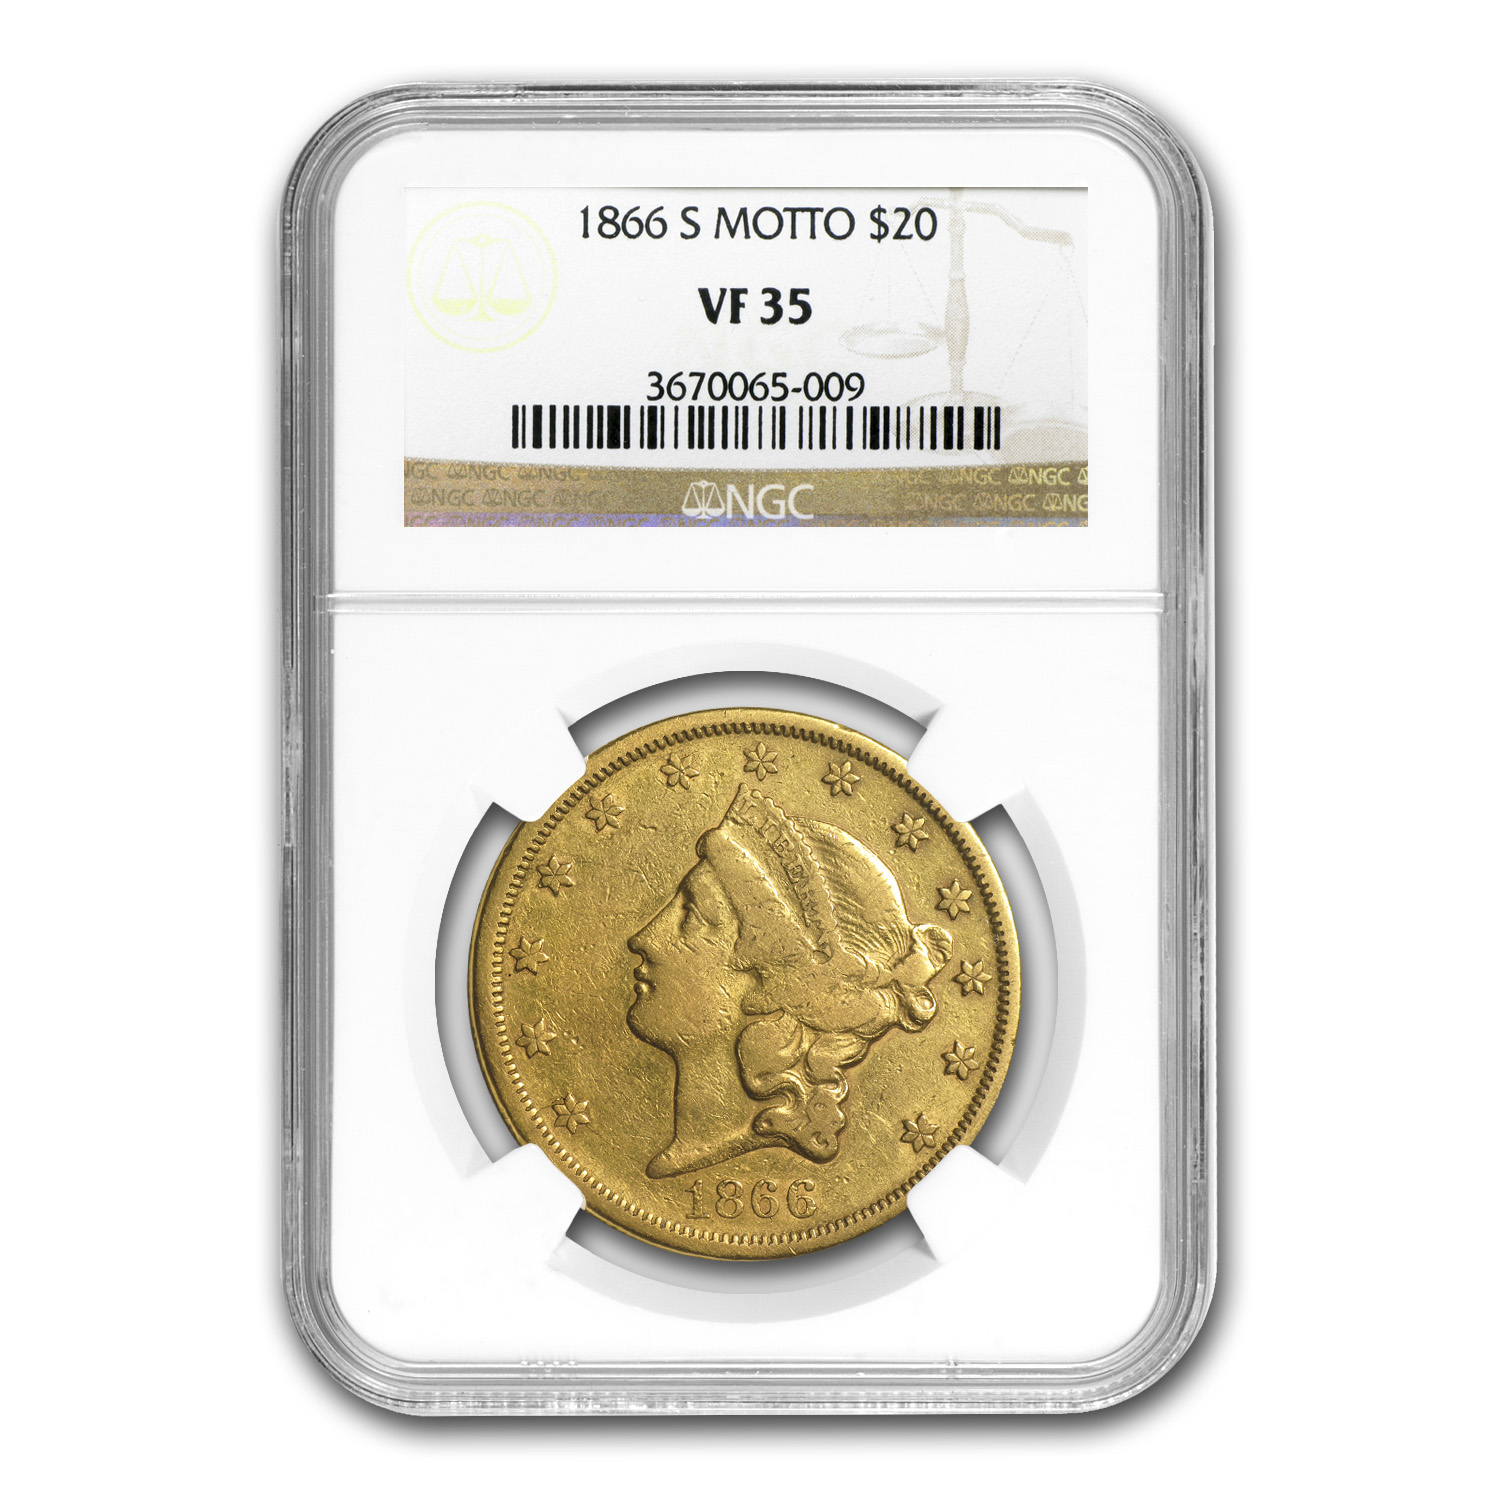 1866-S $20 Gold Liberty Double Eagle (Motto) - VF-35 NGC